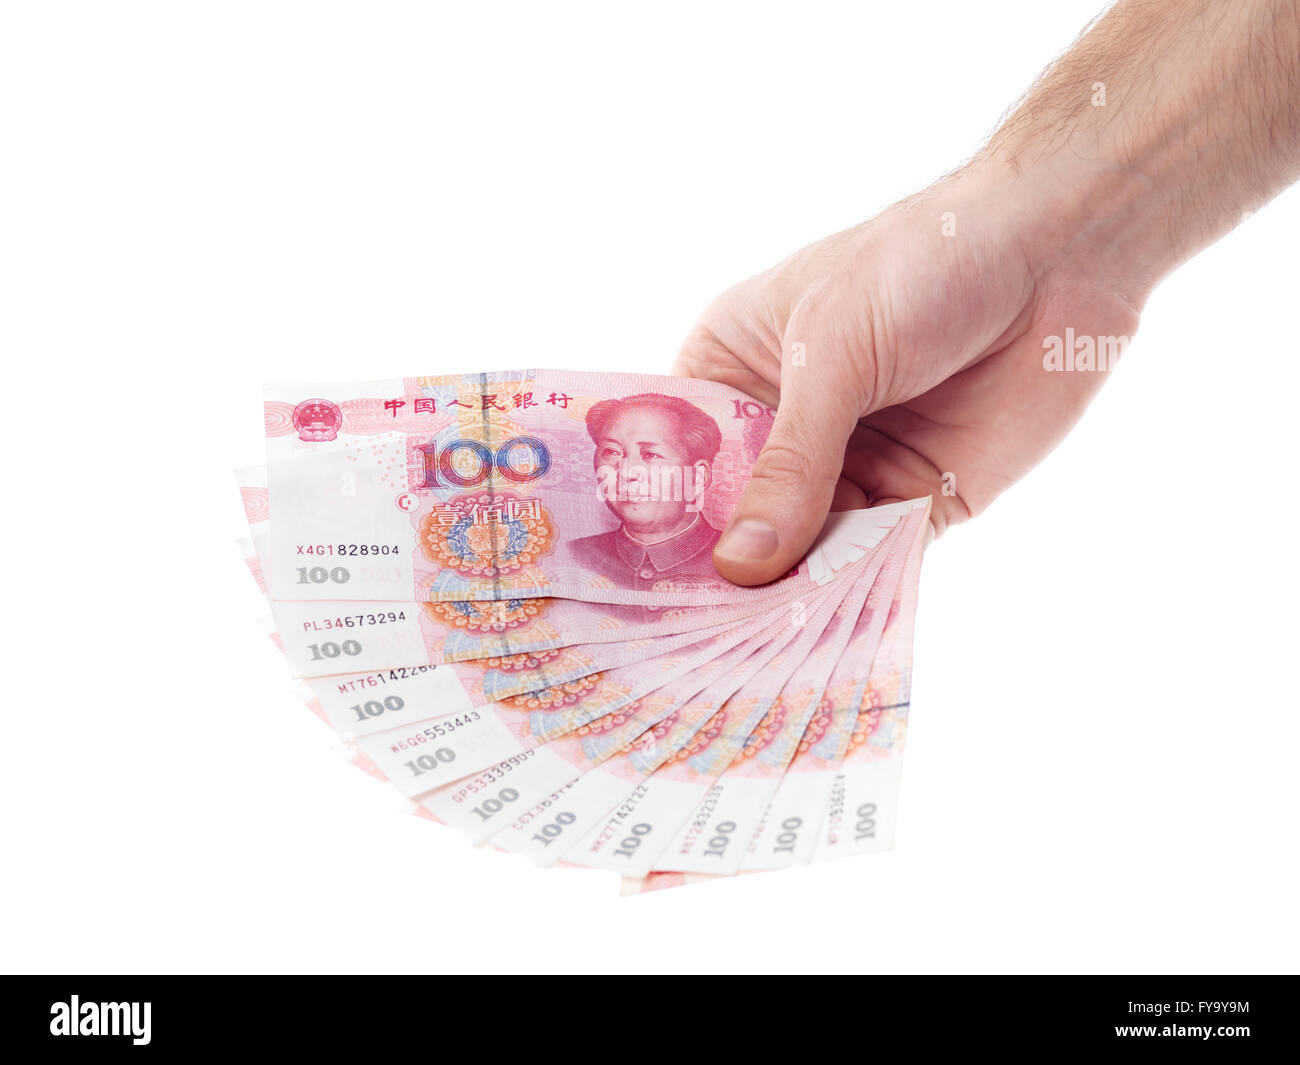 Male hand holding Renminbi bills, official currency of the People's Republic of China - Stock Image